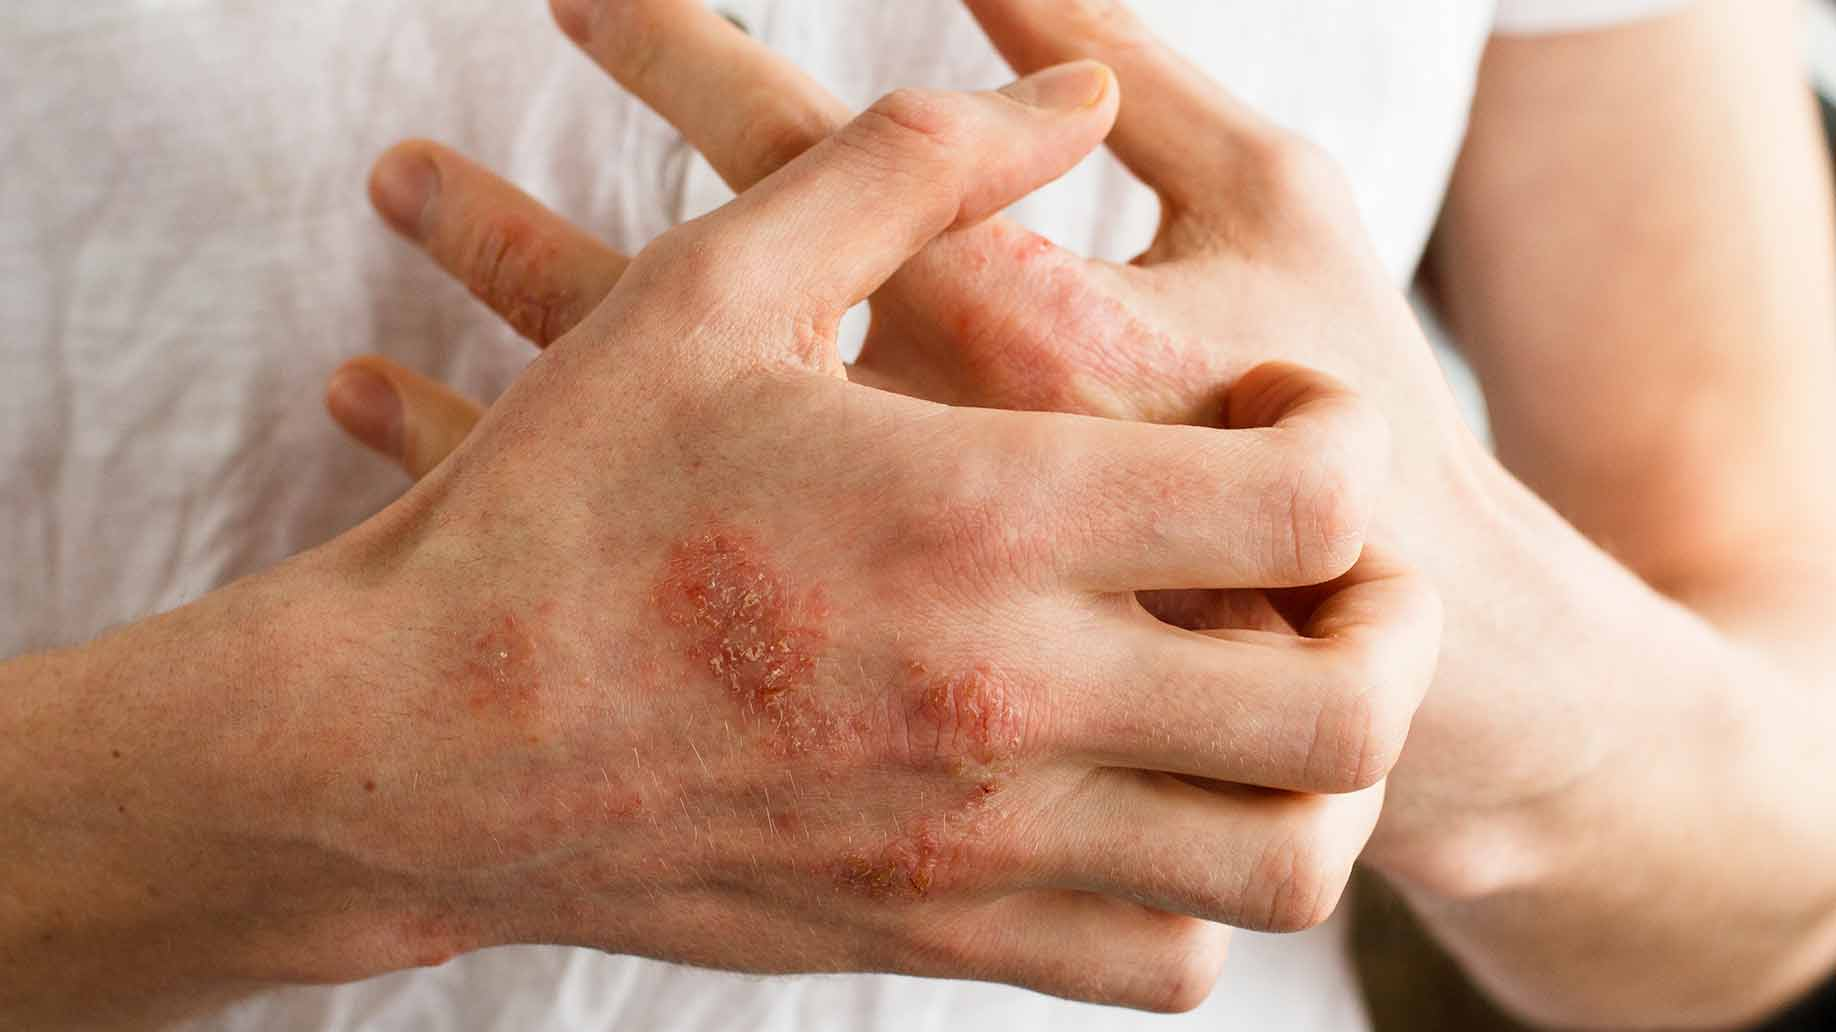 Eczema psoriasis skin disease red itchy patches dry cracked bumps natural remedies